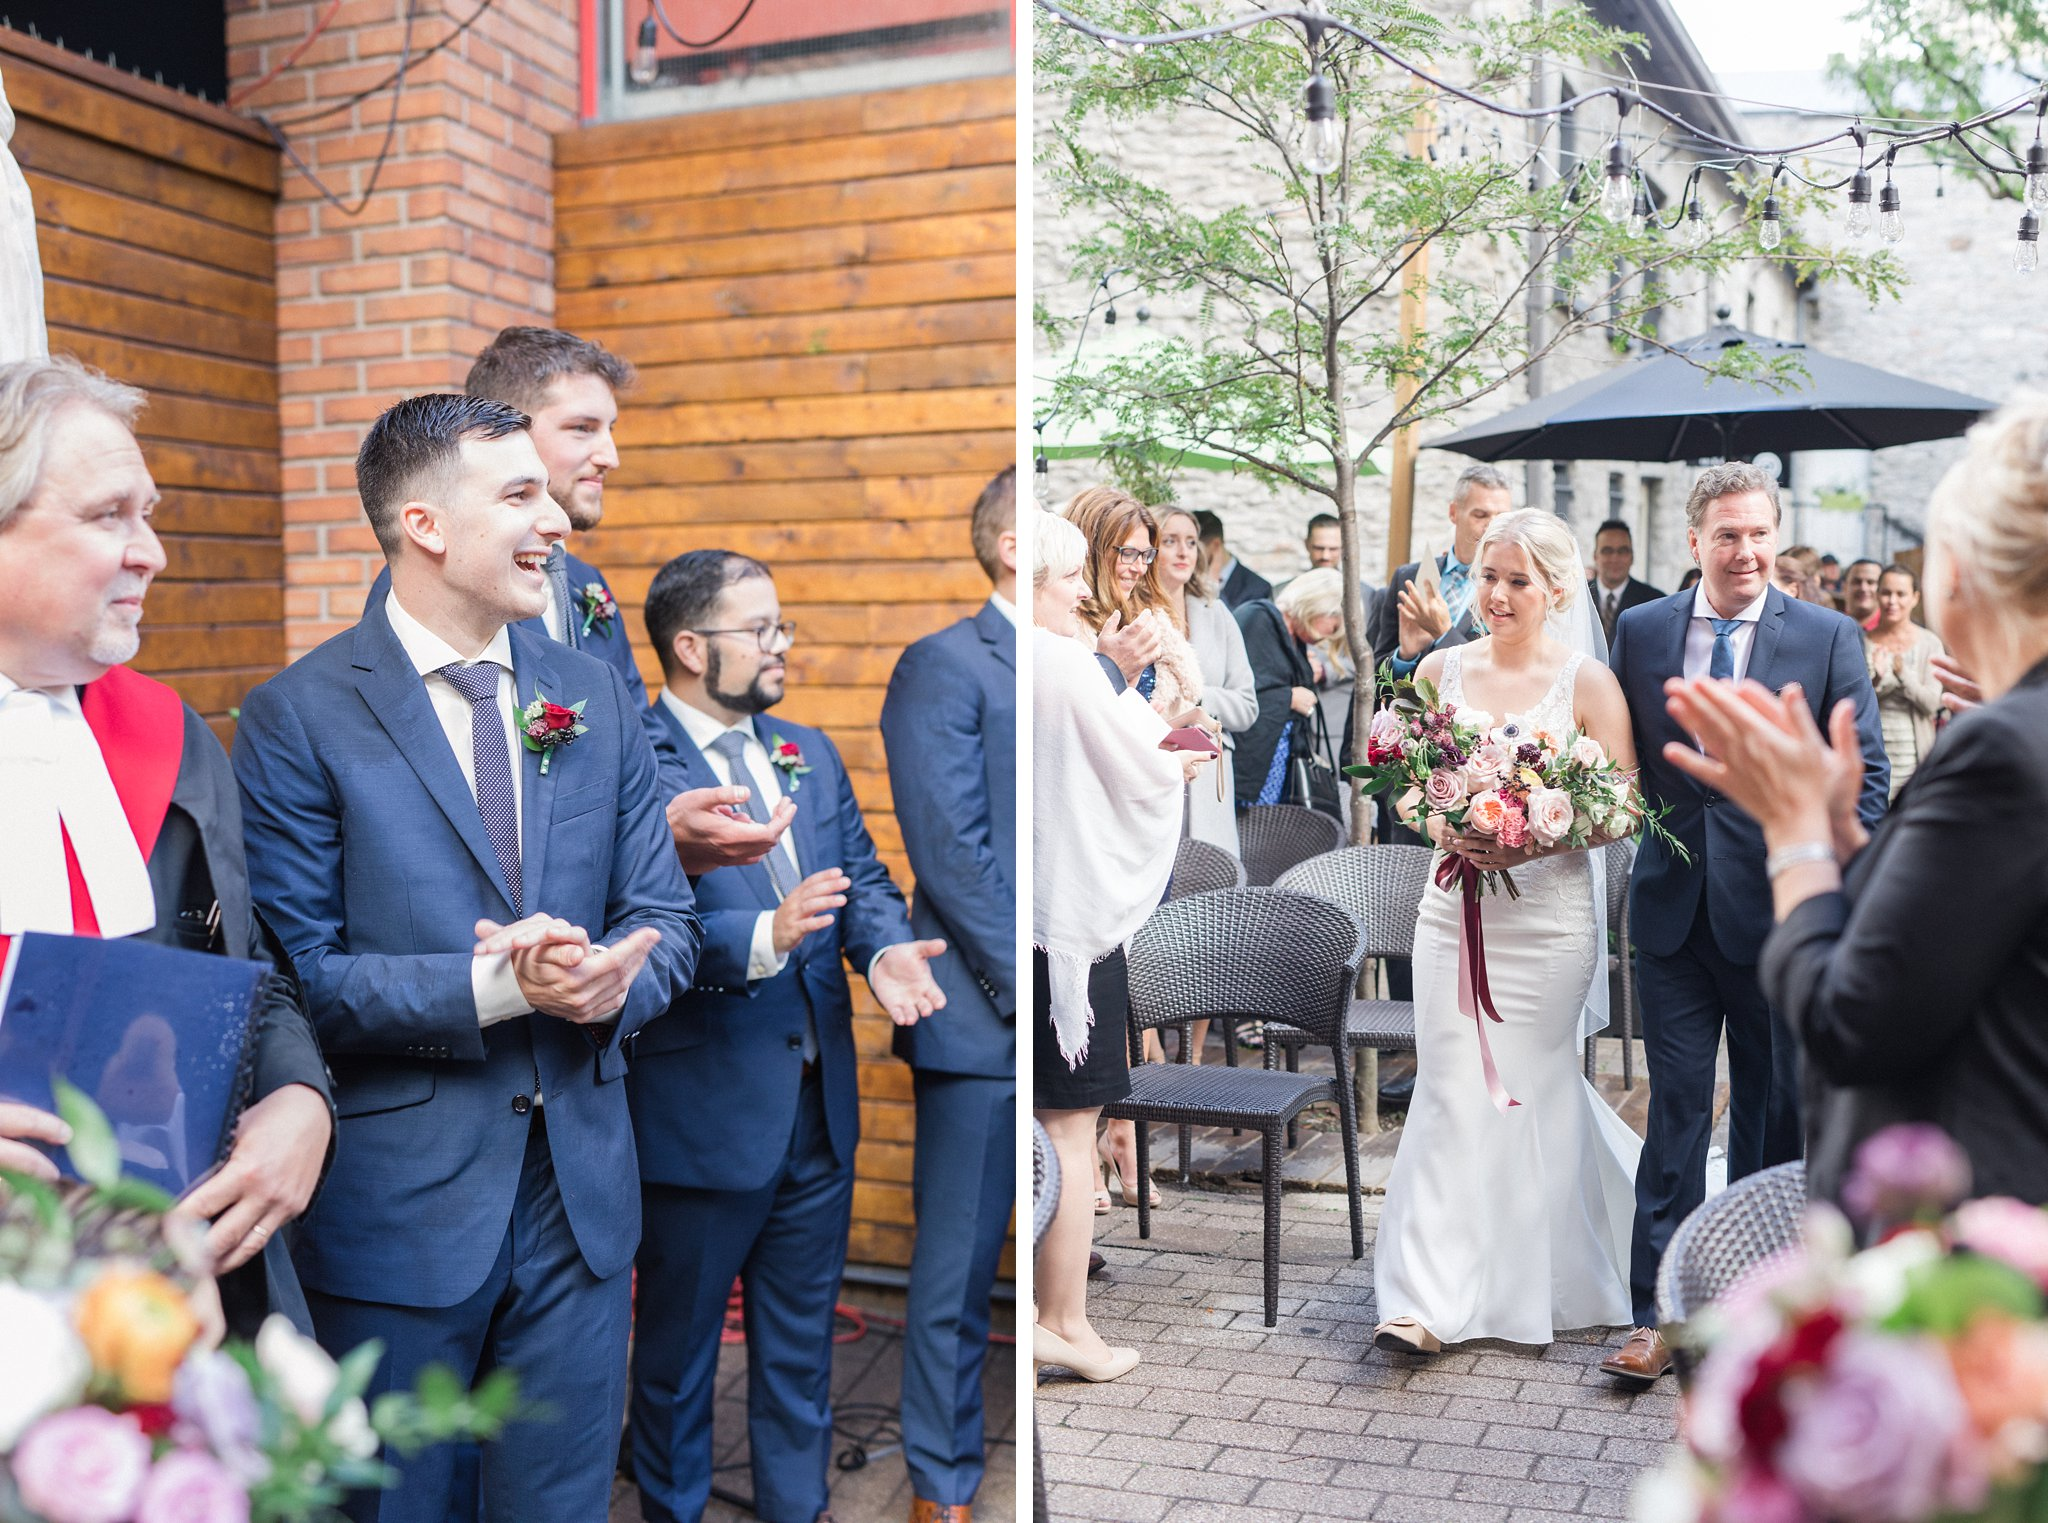 Ceremony processional Ottawa restaurant wedding at Sidedoor Restaurant